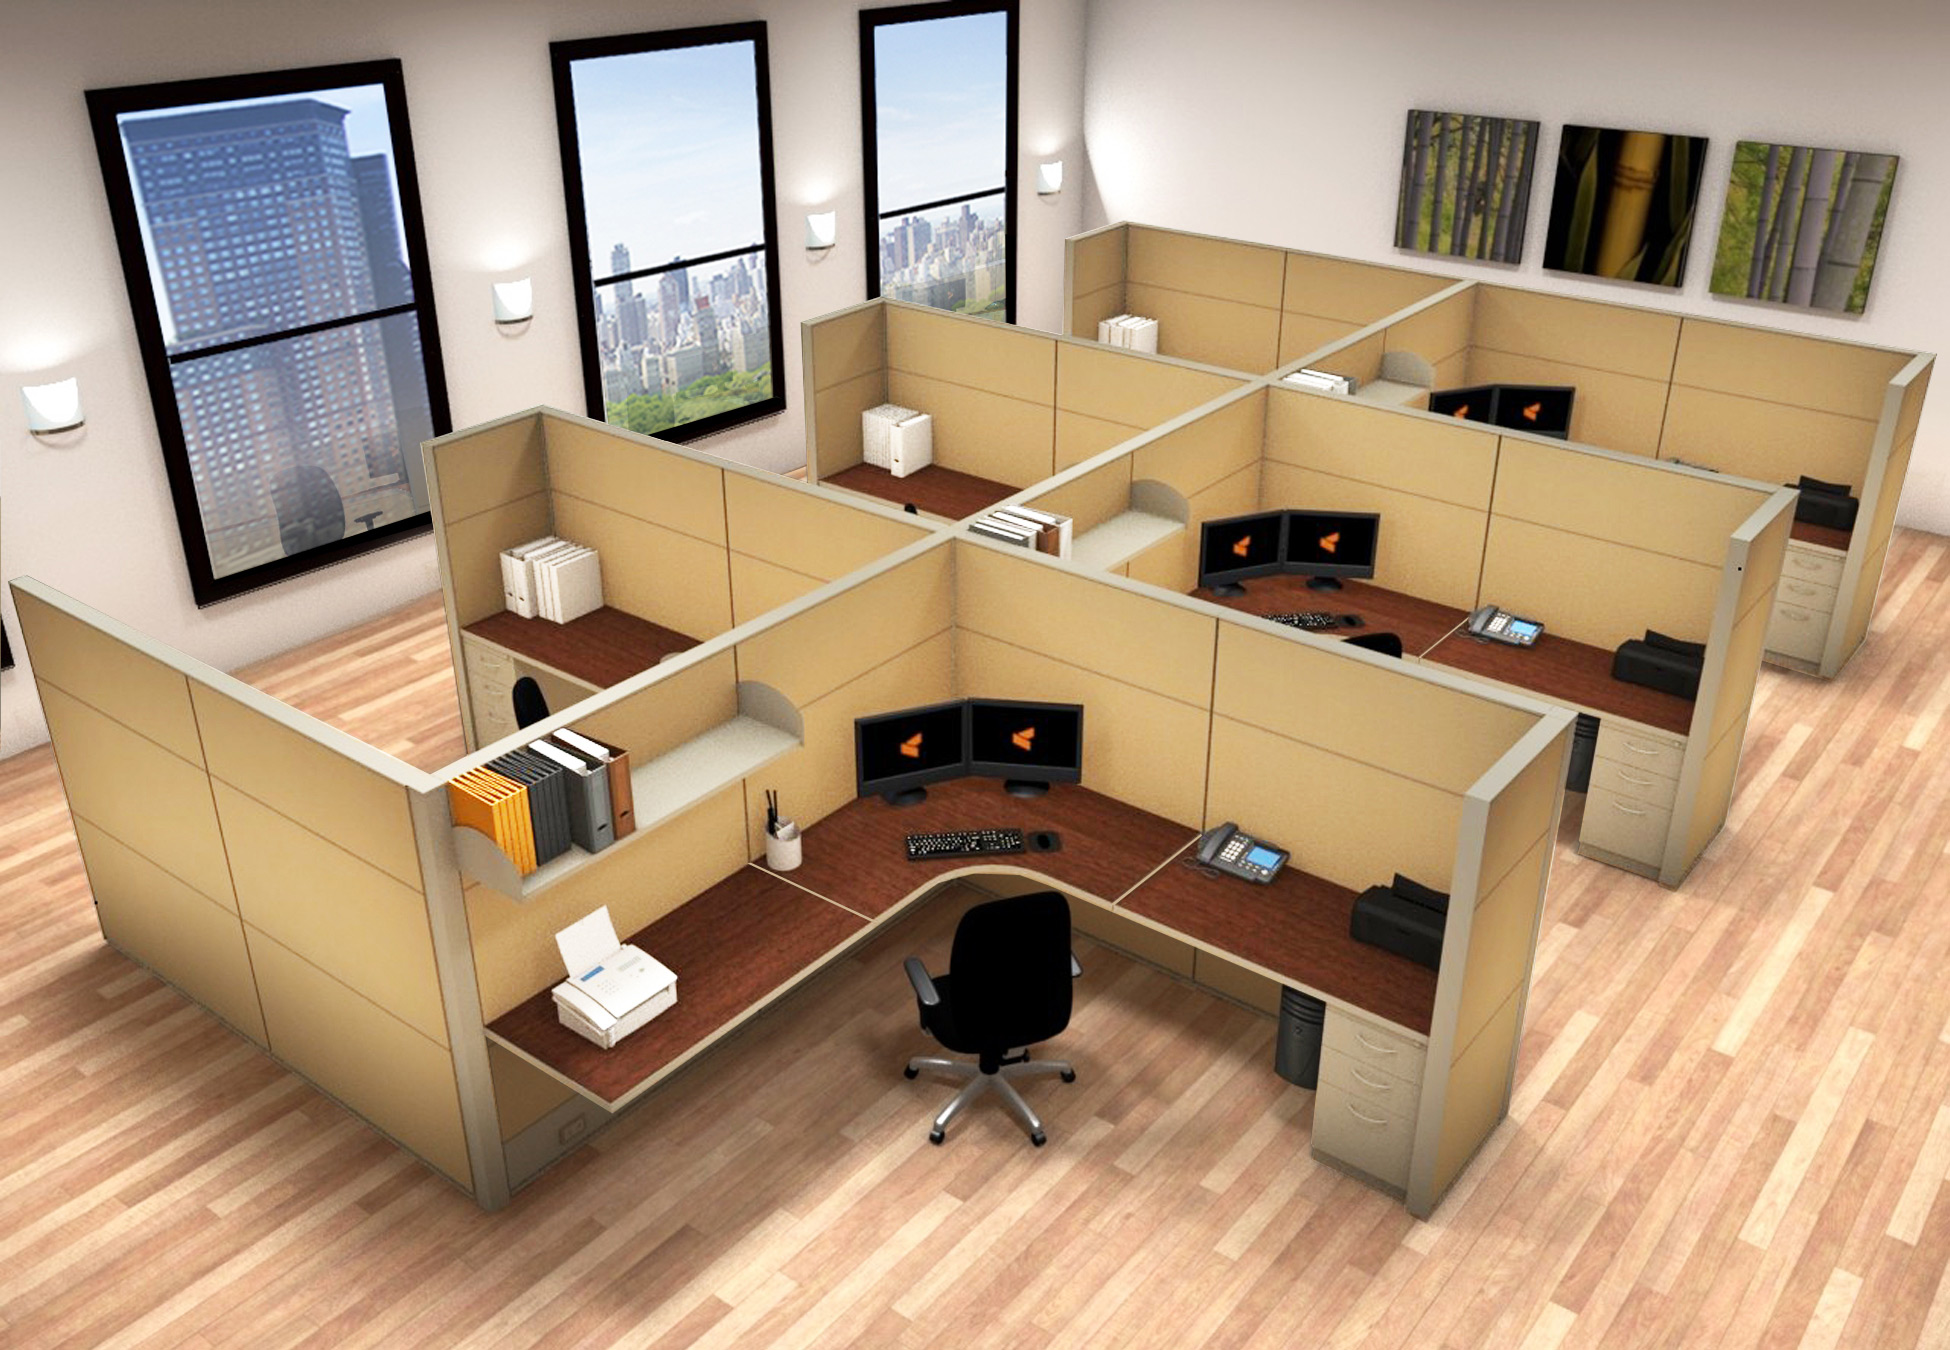 Office System Furniture 8x8 Cubicle Workstations